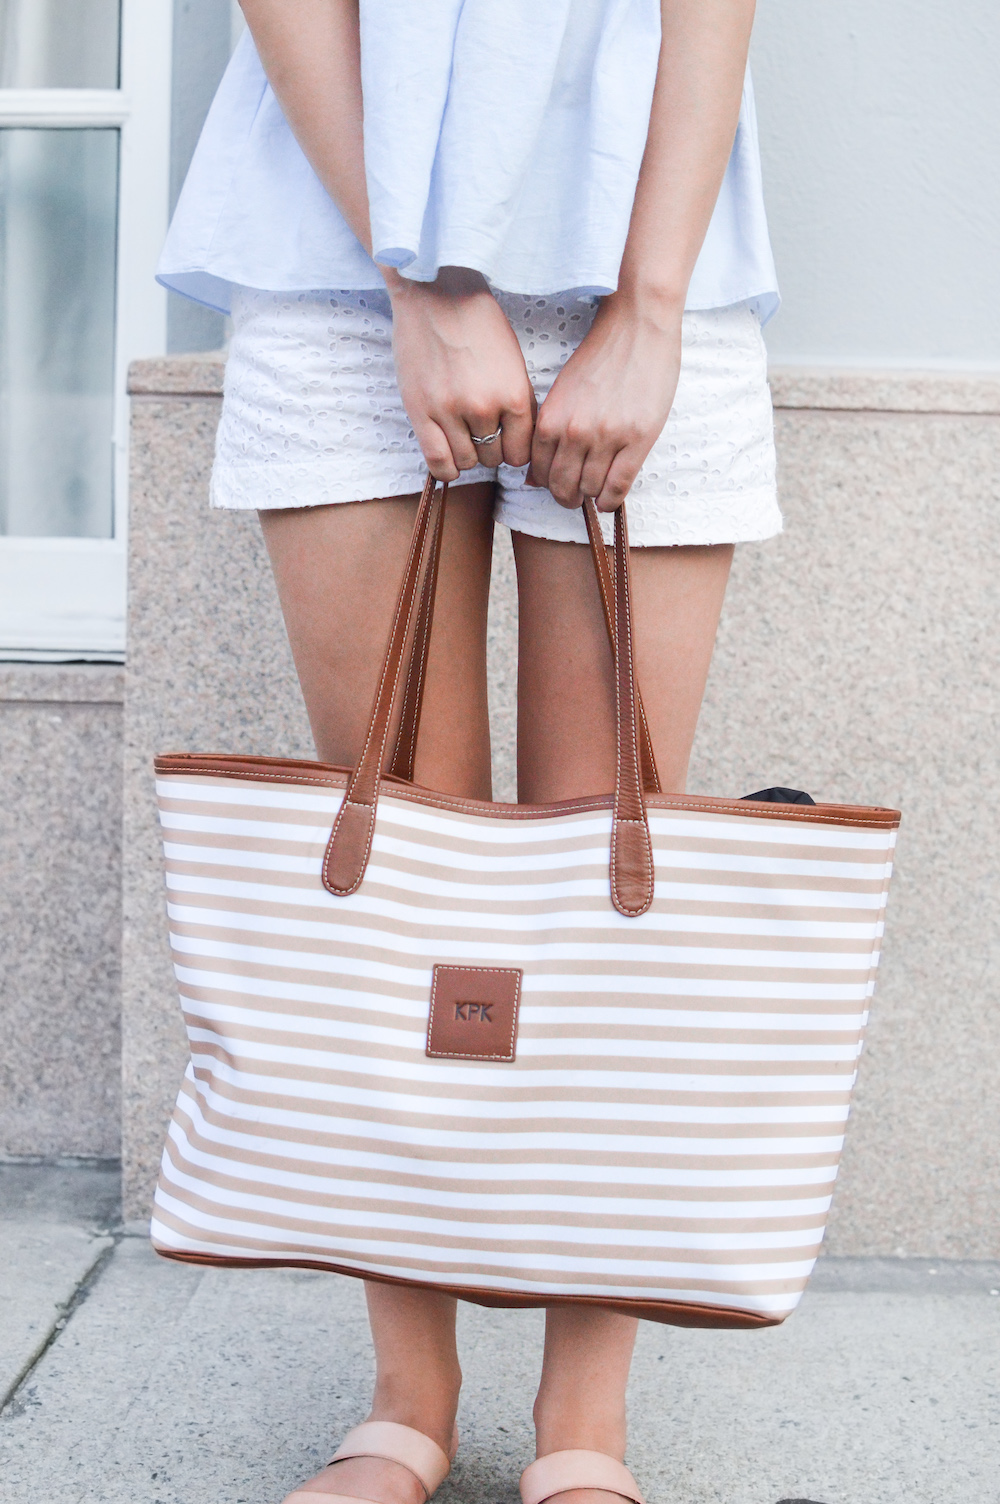 Preppy Tote from Barrington Gifts